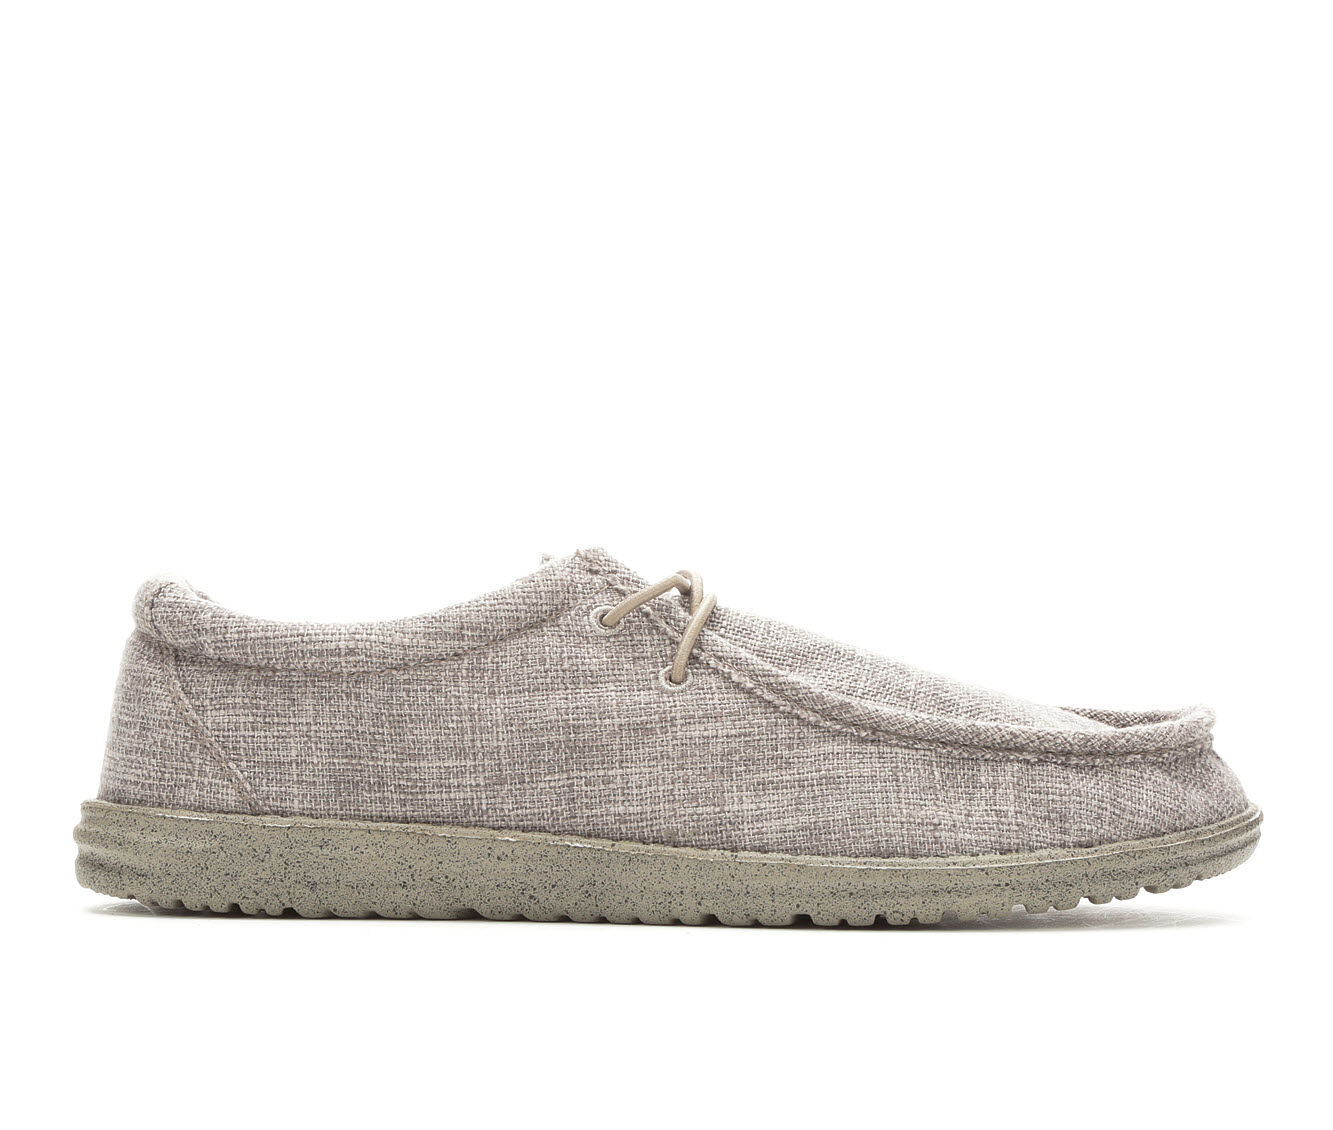 Men's Crevo Ronnie Casual Shoes Grey